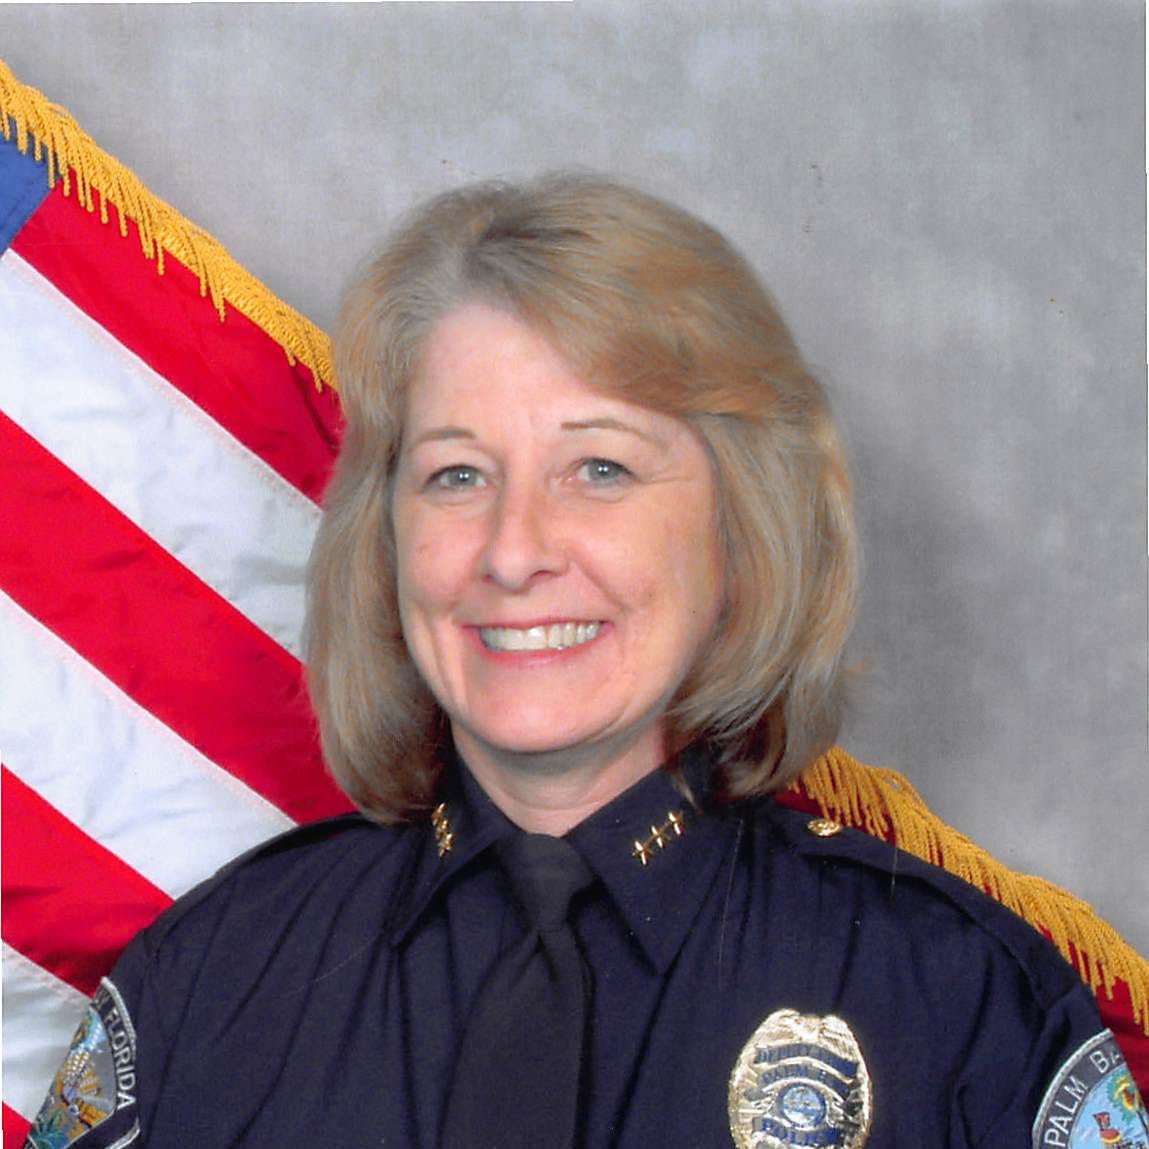 Lynne Nungesser, first female police commander in Brevard, loses battle with cancer